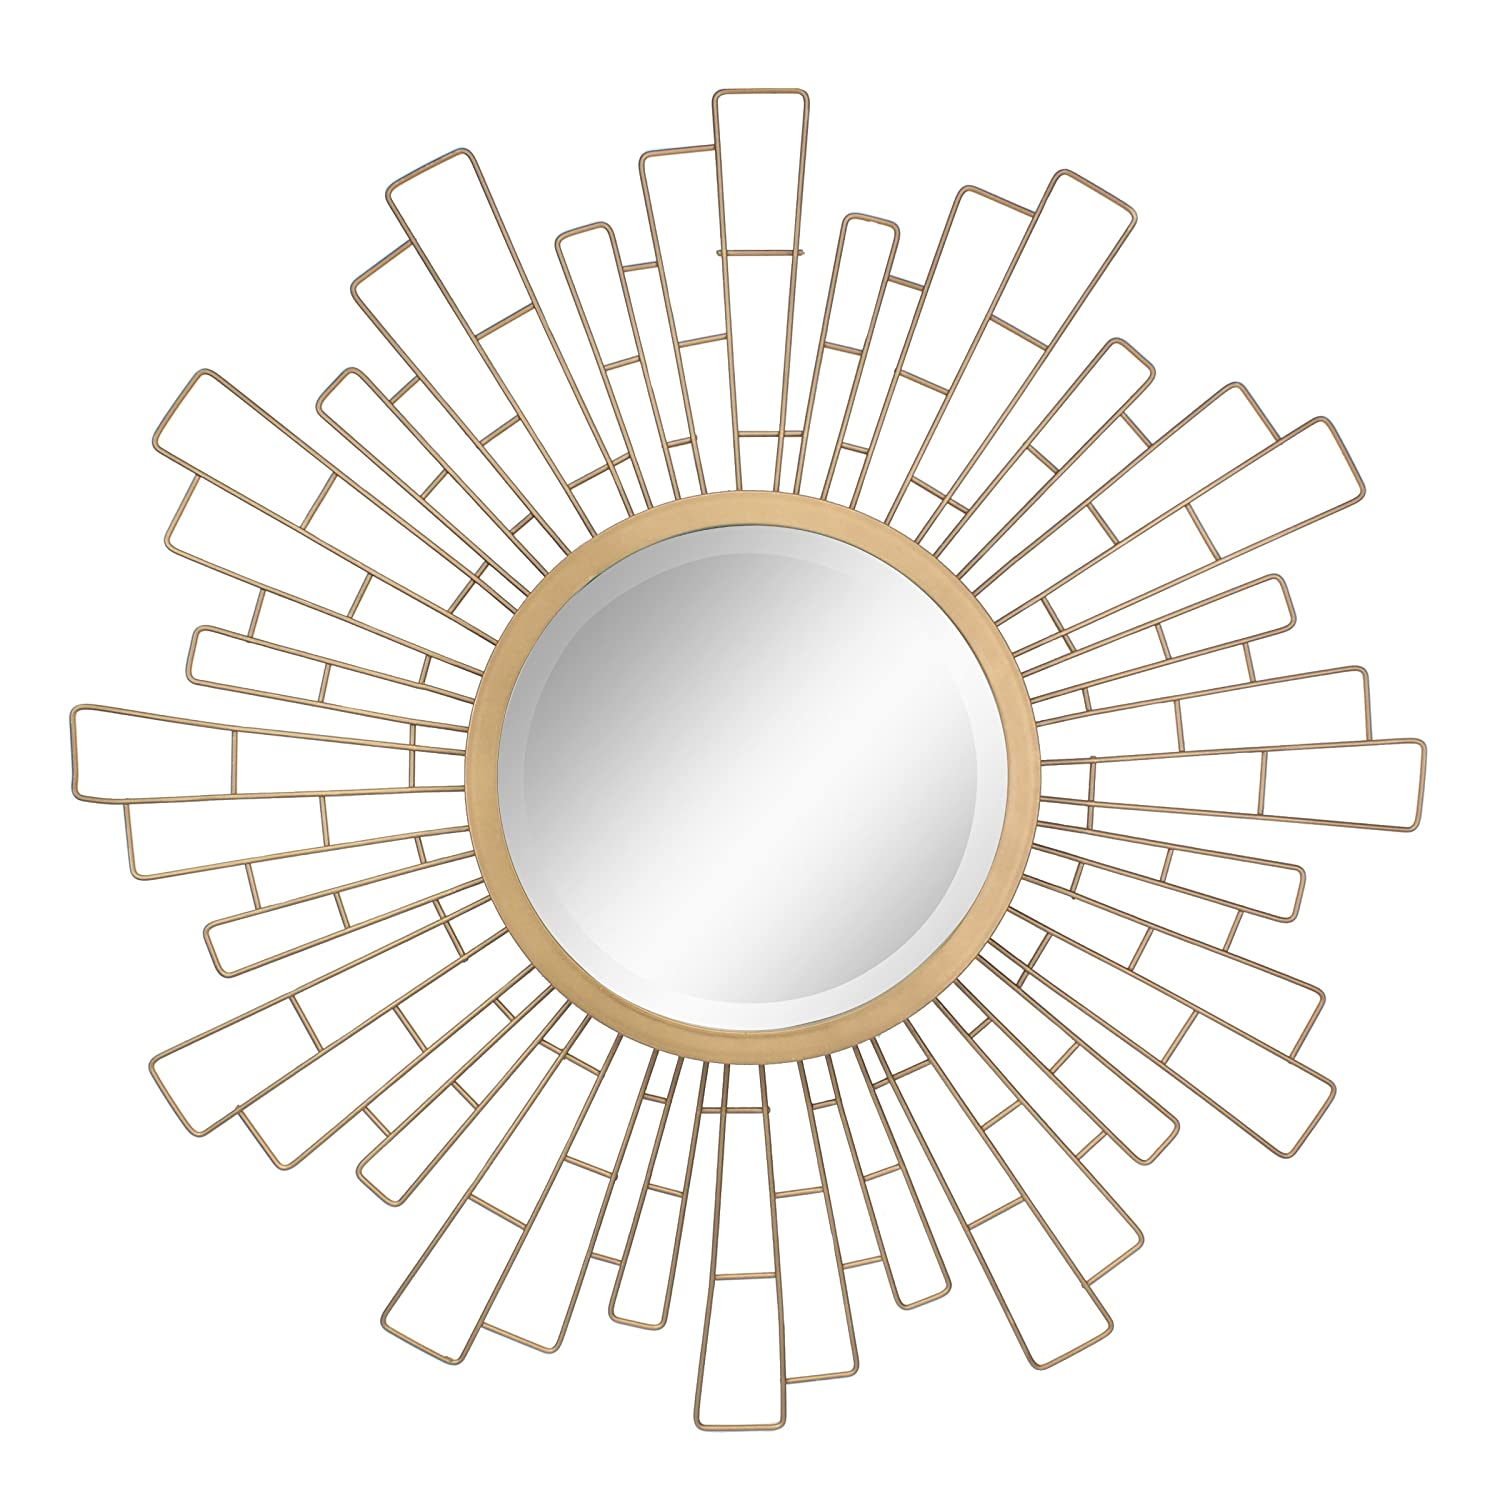 Stonebriar Round Decorative Antique Gold 23 Geometric Metal Sunburst Hanging Mirror Wall, Modern Boho Decor The Living Room, Bathroom, Bedroom Entryway CKK Home Decor SB-6140A